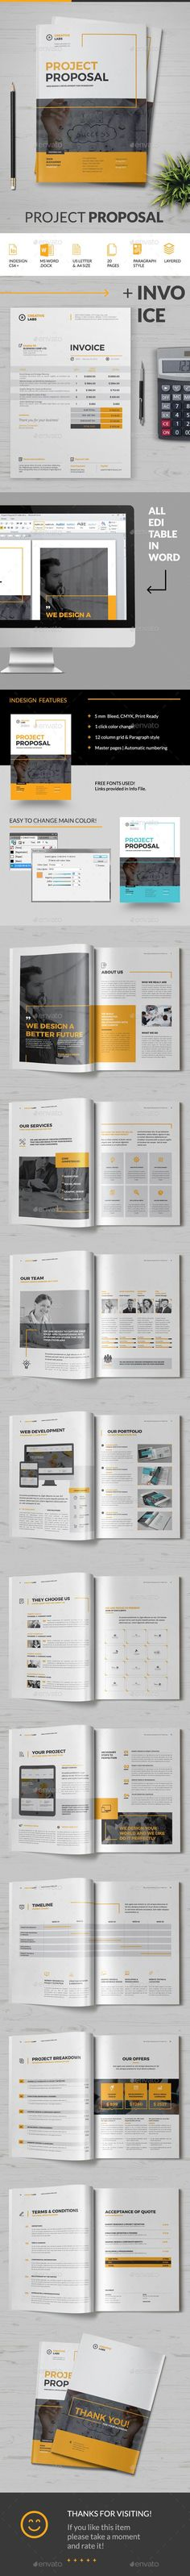 Proposal Business Project Proposal Template V280 Project